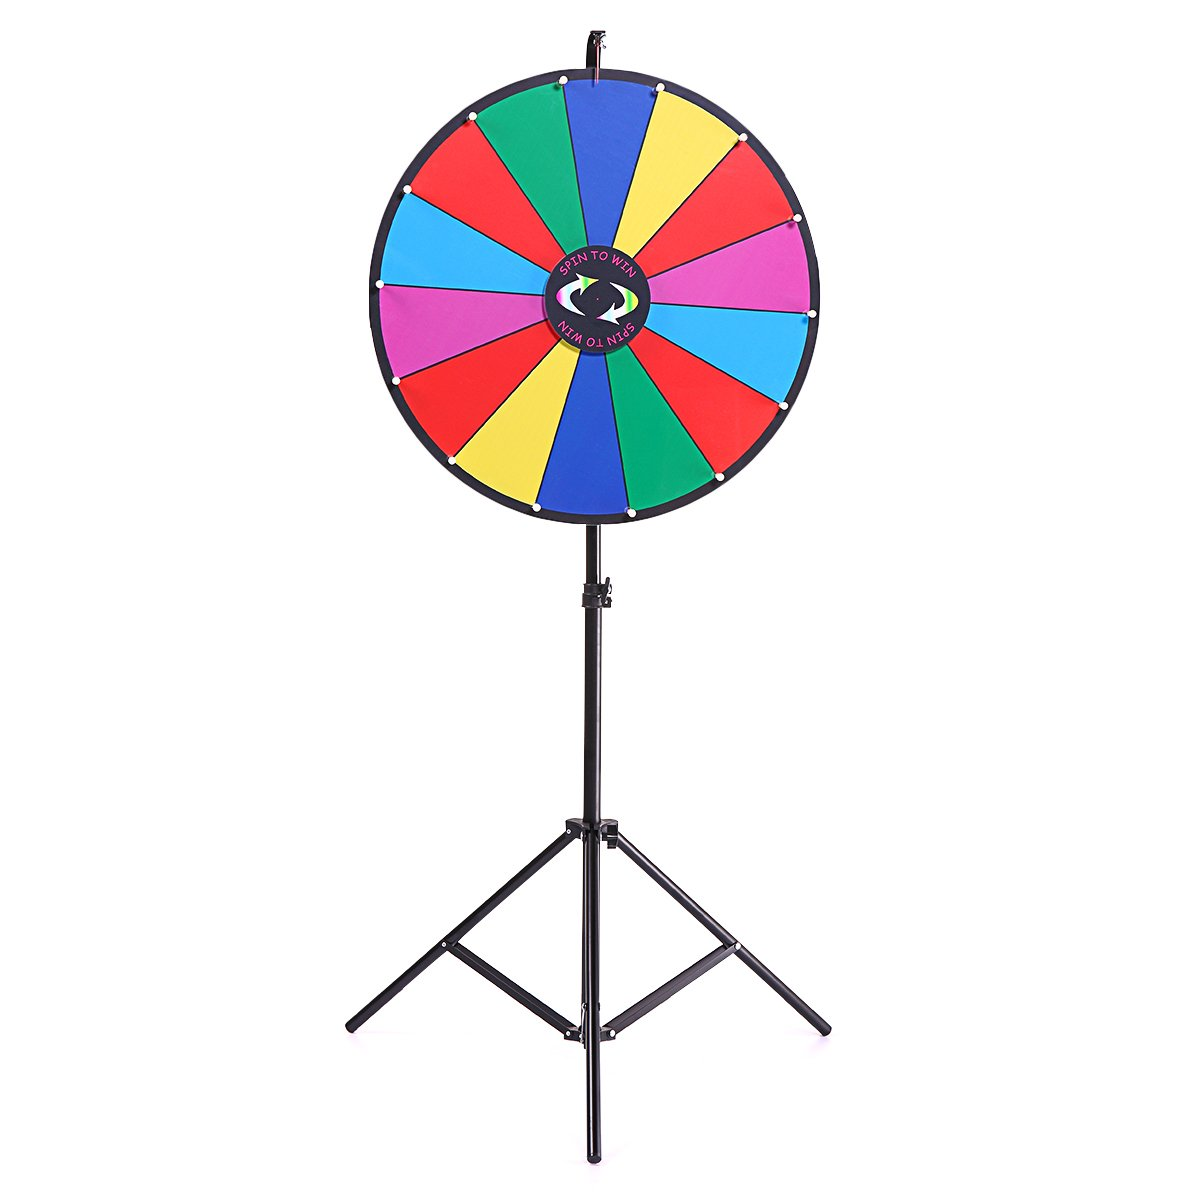 JAXPETY Upgraded Editable 24'' Color Prize Wheel Fortune Tabletop Spinning Game with Folding Tripod Floor Stand 14 Slots